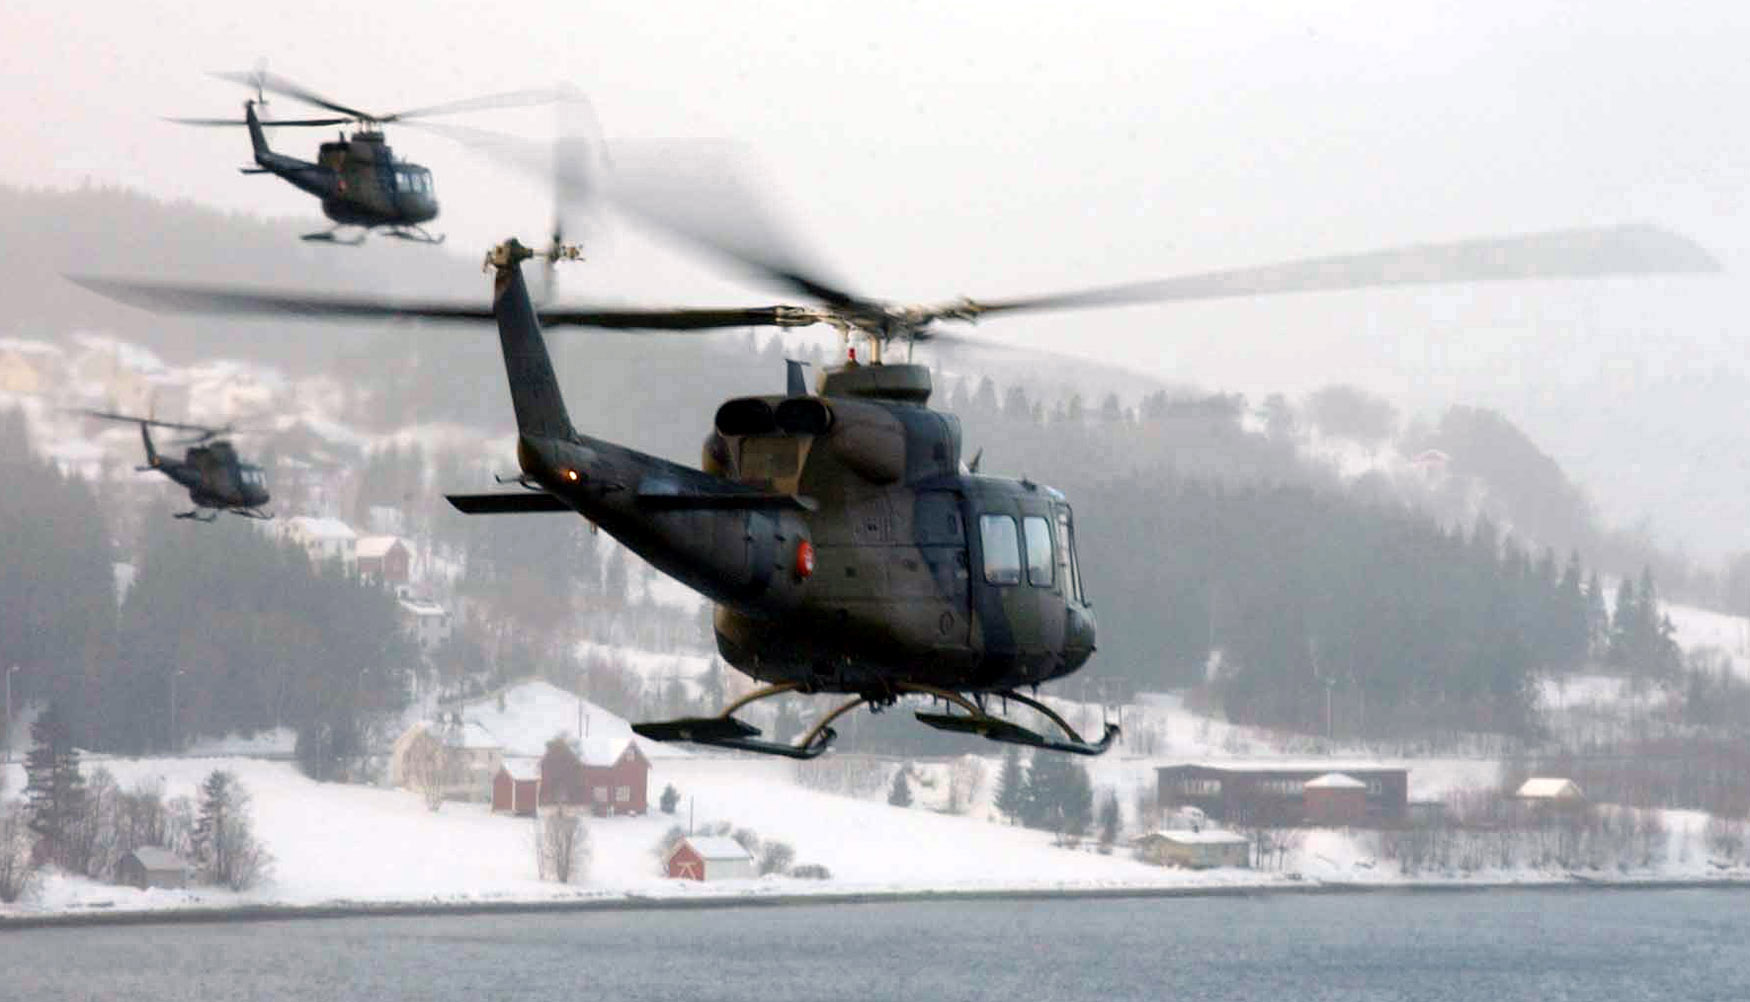 bell 47 specifications with Pakistan Army Aviation Corps on Flathead specs 85to100mid besides Acer Asppire 5740G besides Clear Podium likewise 1997 Pilatus Pc 1245 Sn 197 moreover German Horn.